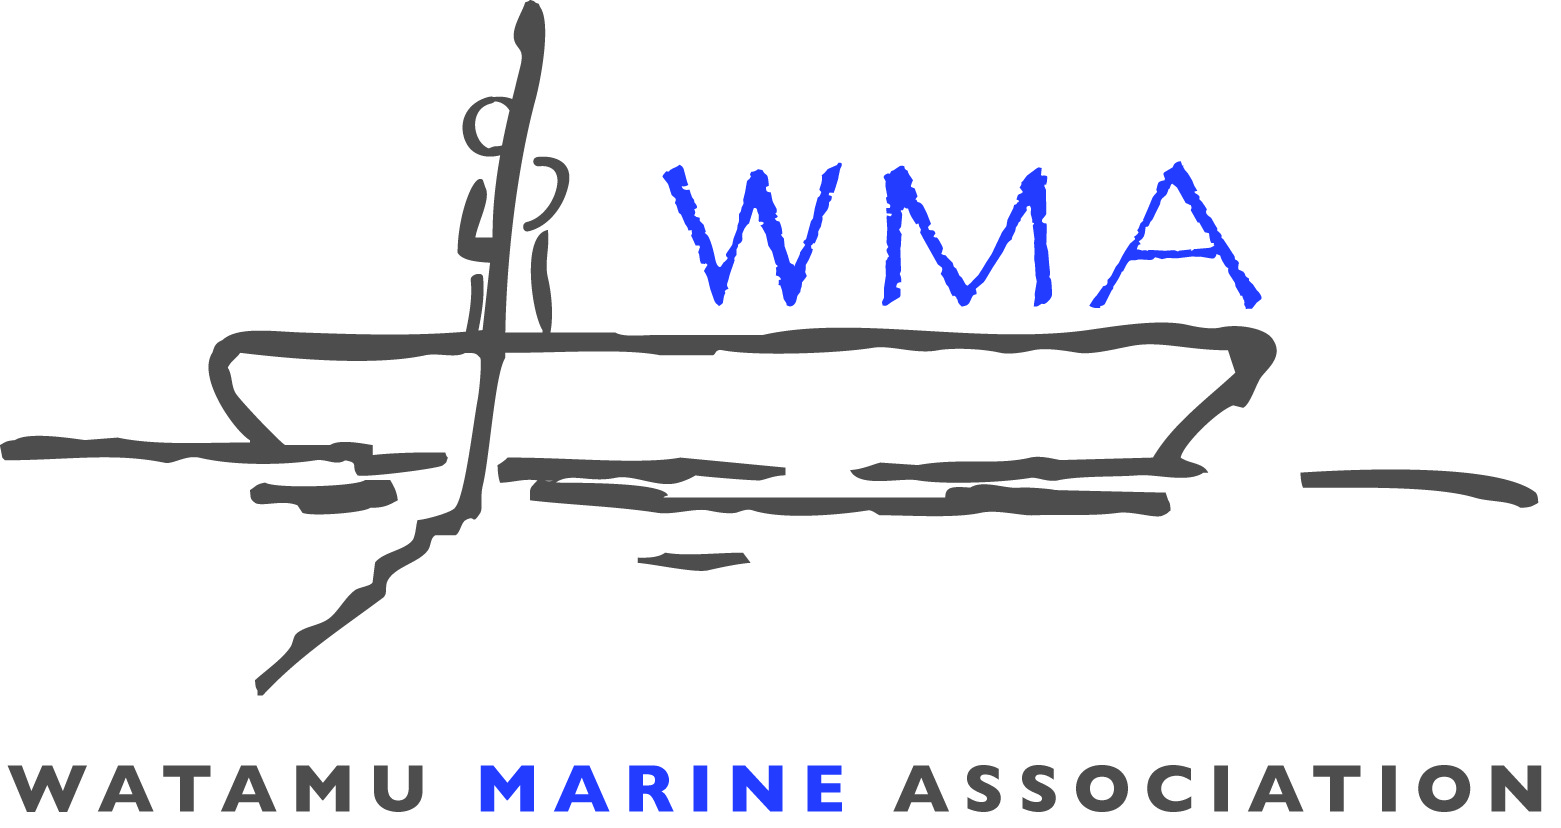 WMA logo high res TIFF.jpg